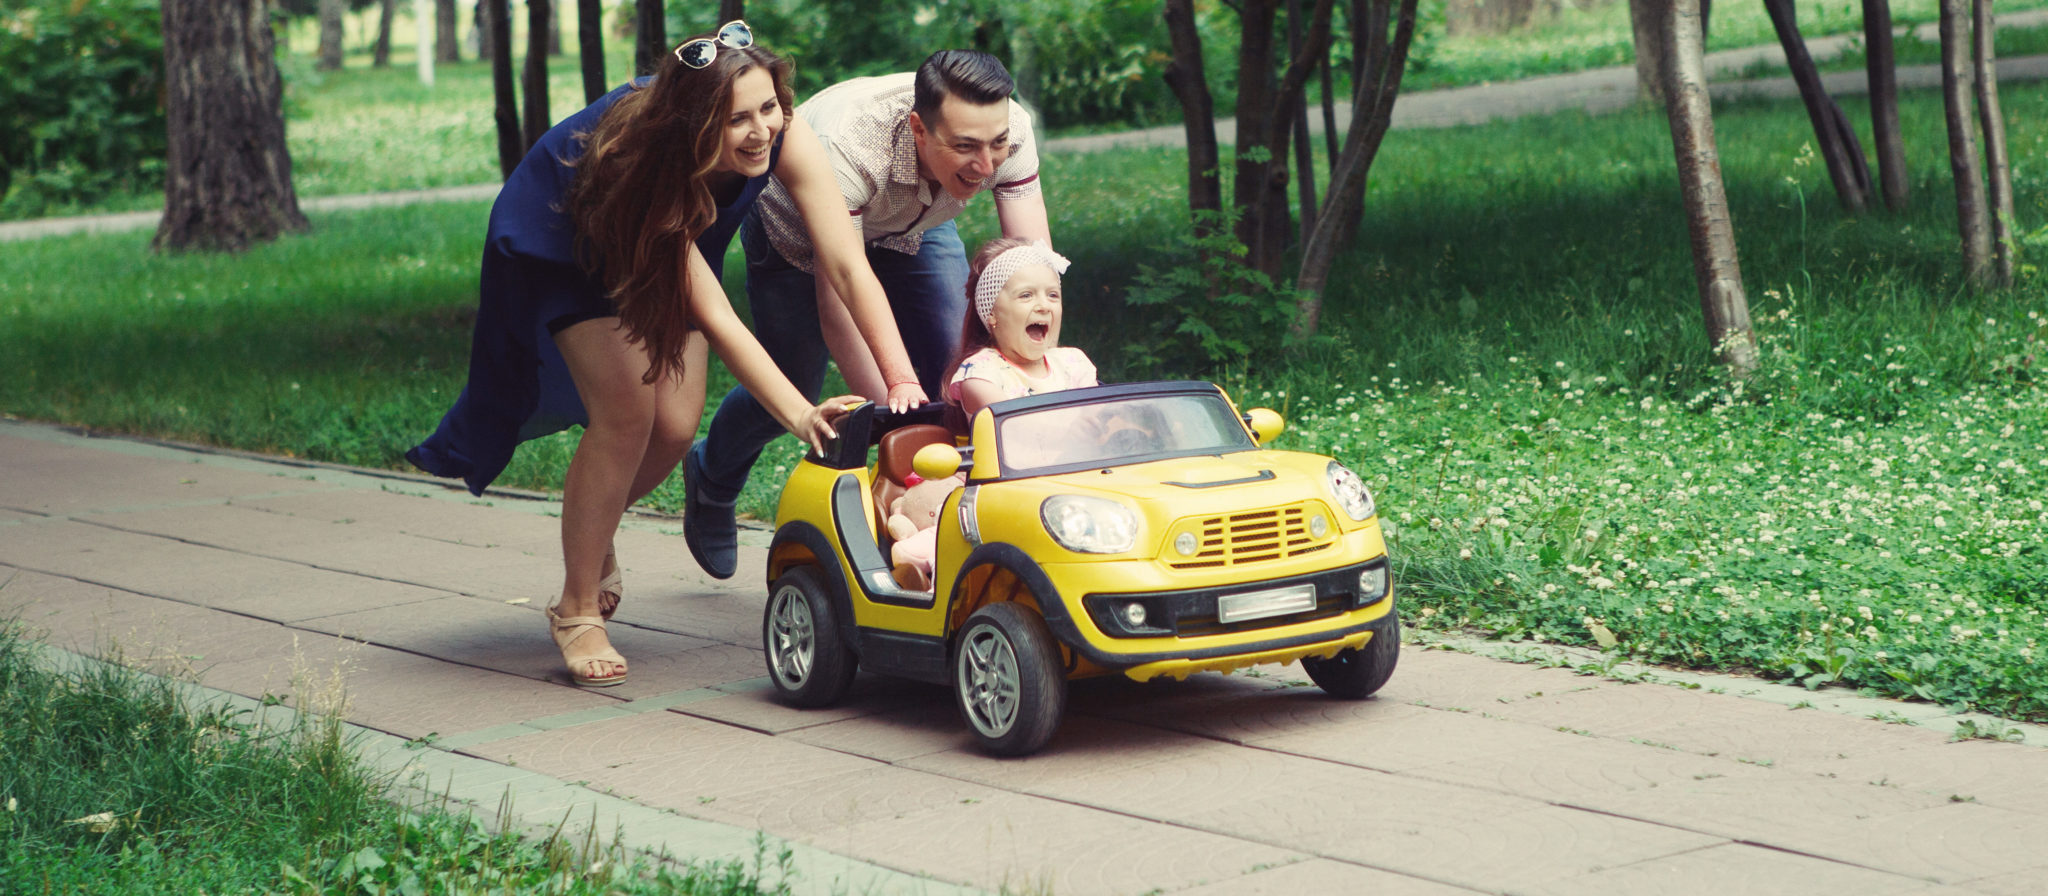 Finding a car for baby to ride in provides kids with fun and creates bonding moments for parents.